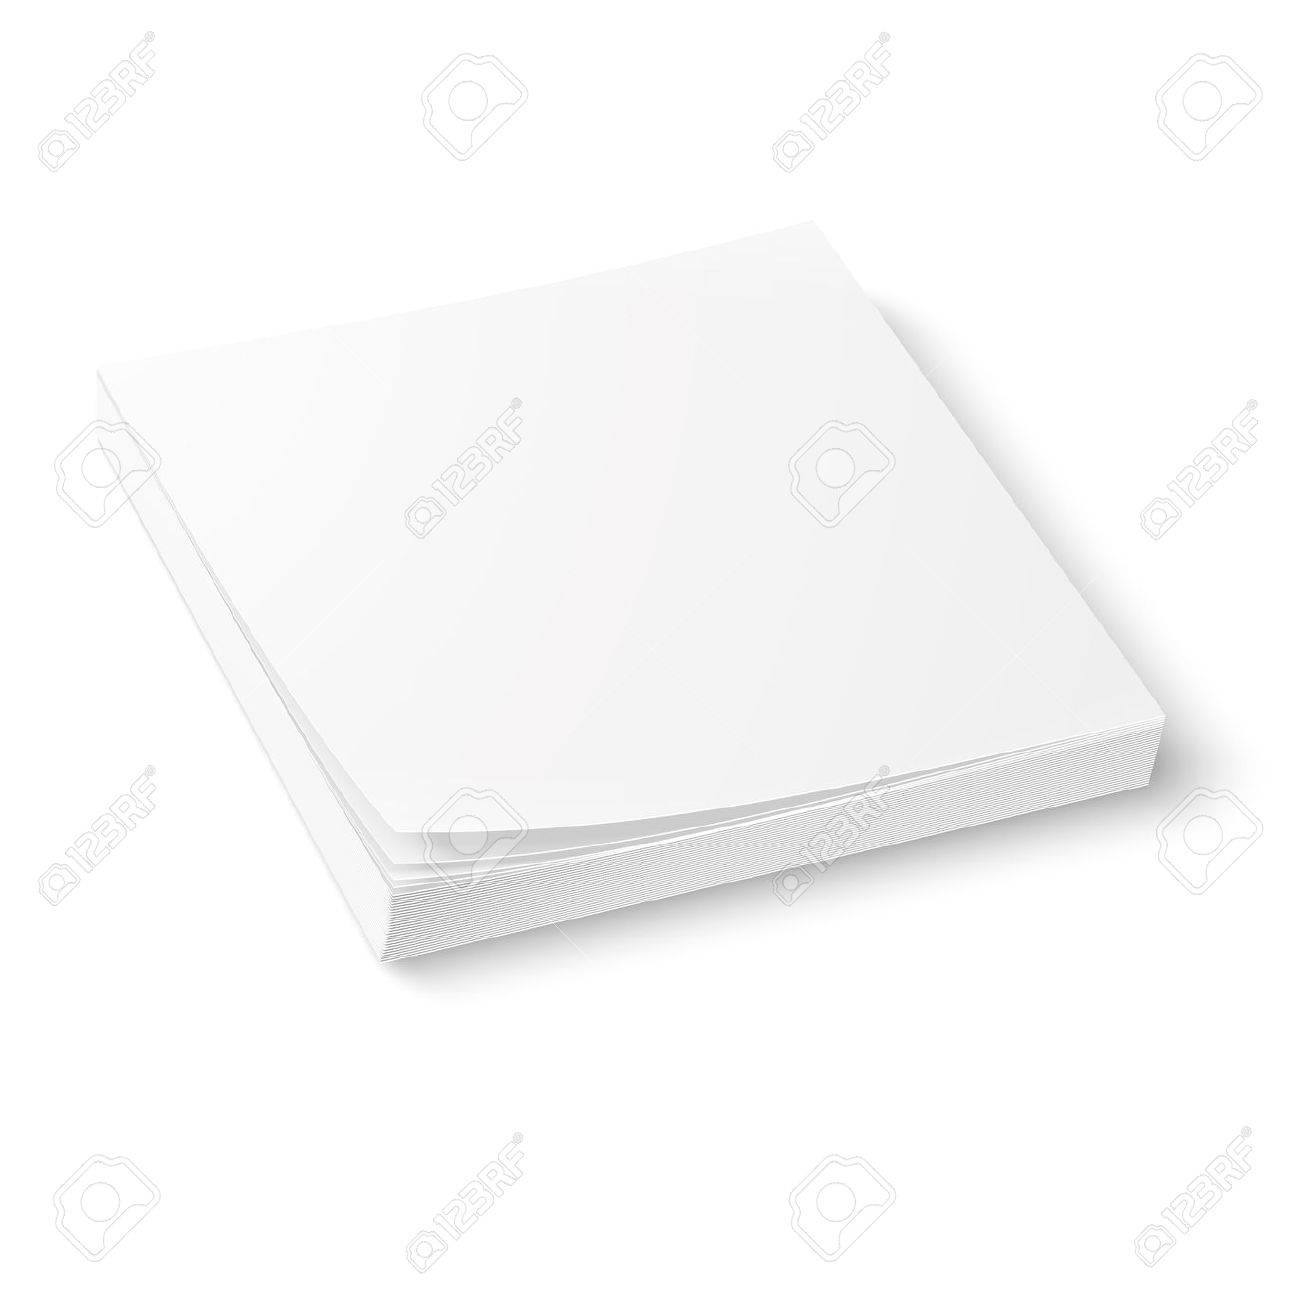 White Square Paper Or Sticker Block Template, Isolated On White ...